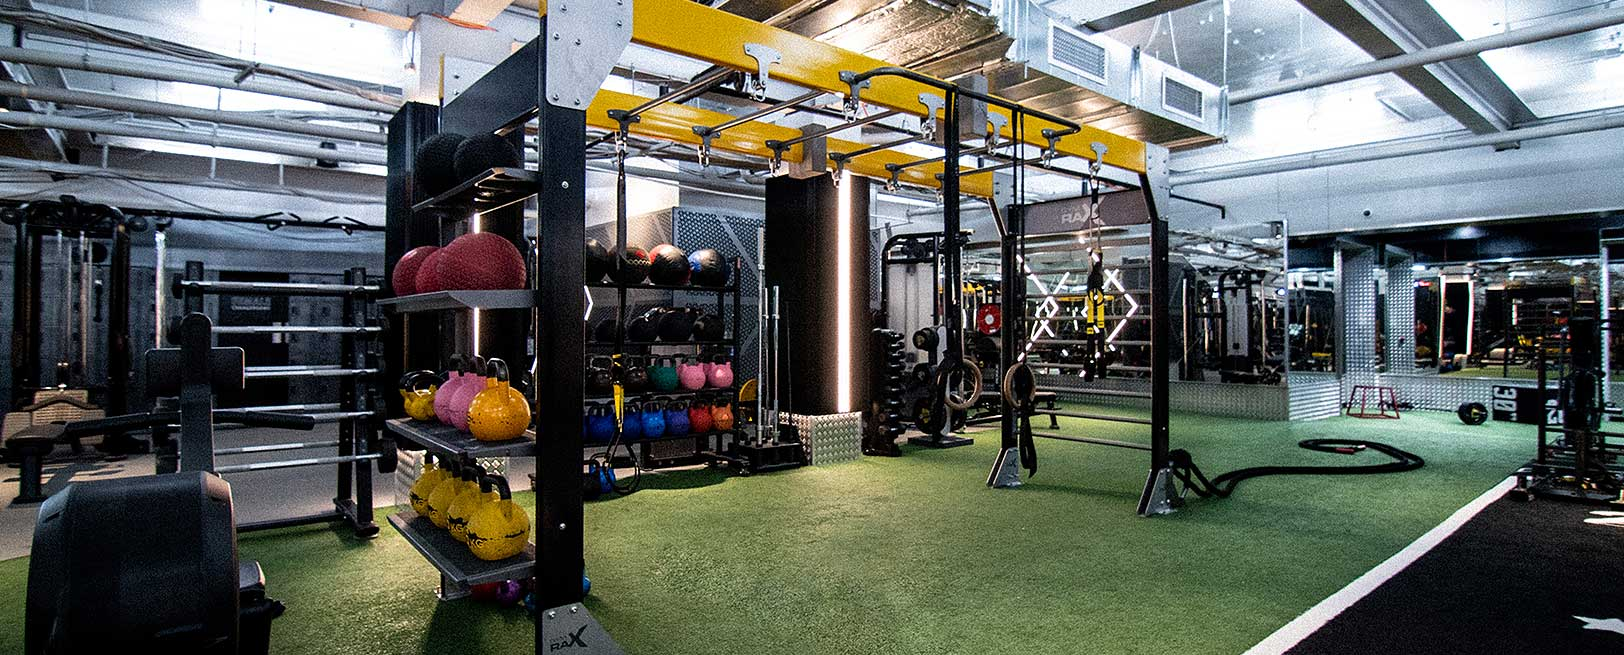 fitness_playground_marrickville_gym_facilities_banner_6